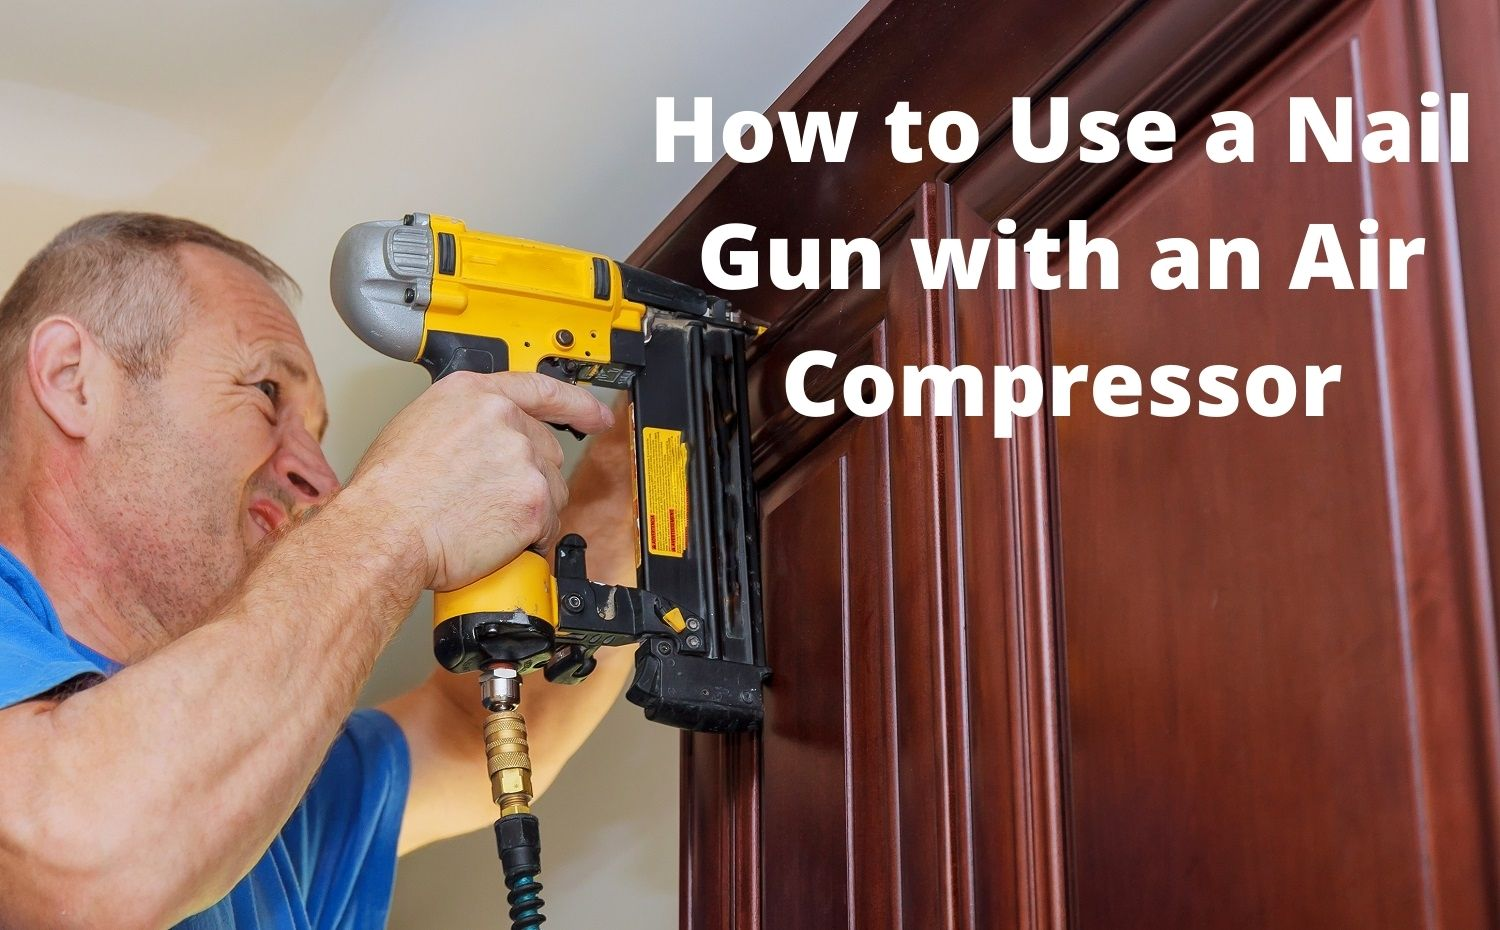 How to Use a Nail Gun with an Air Compressor